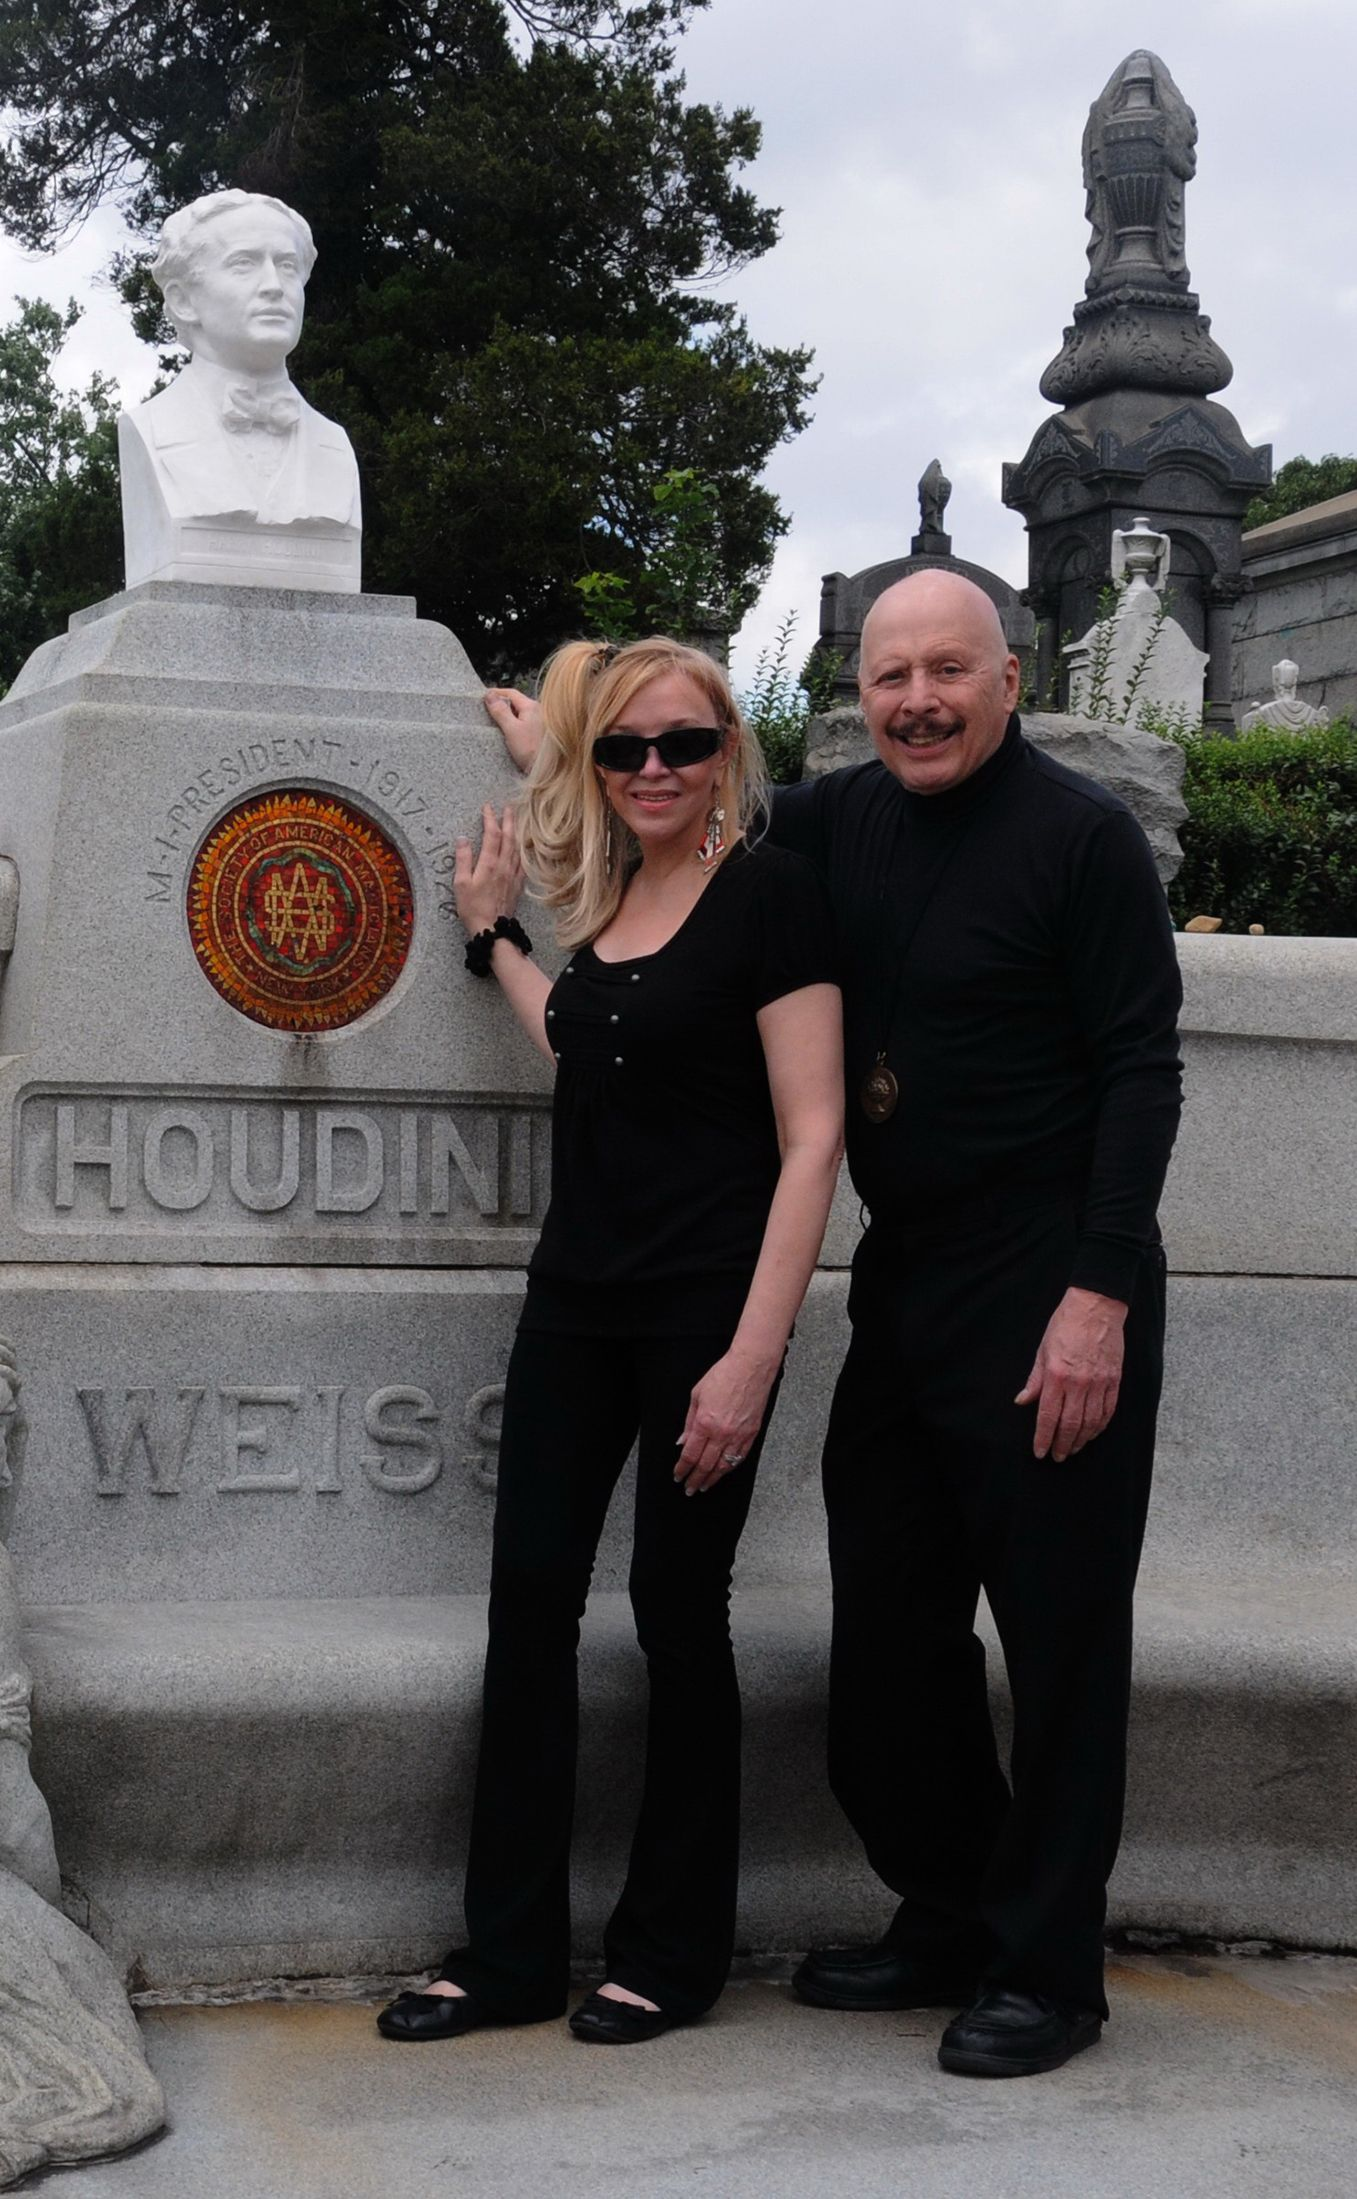 Dietrich and Brookz replaced vandalized Houdini bust at his grave. Cost $10,000